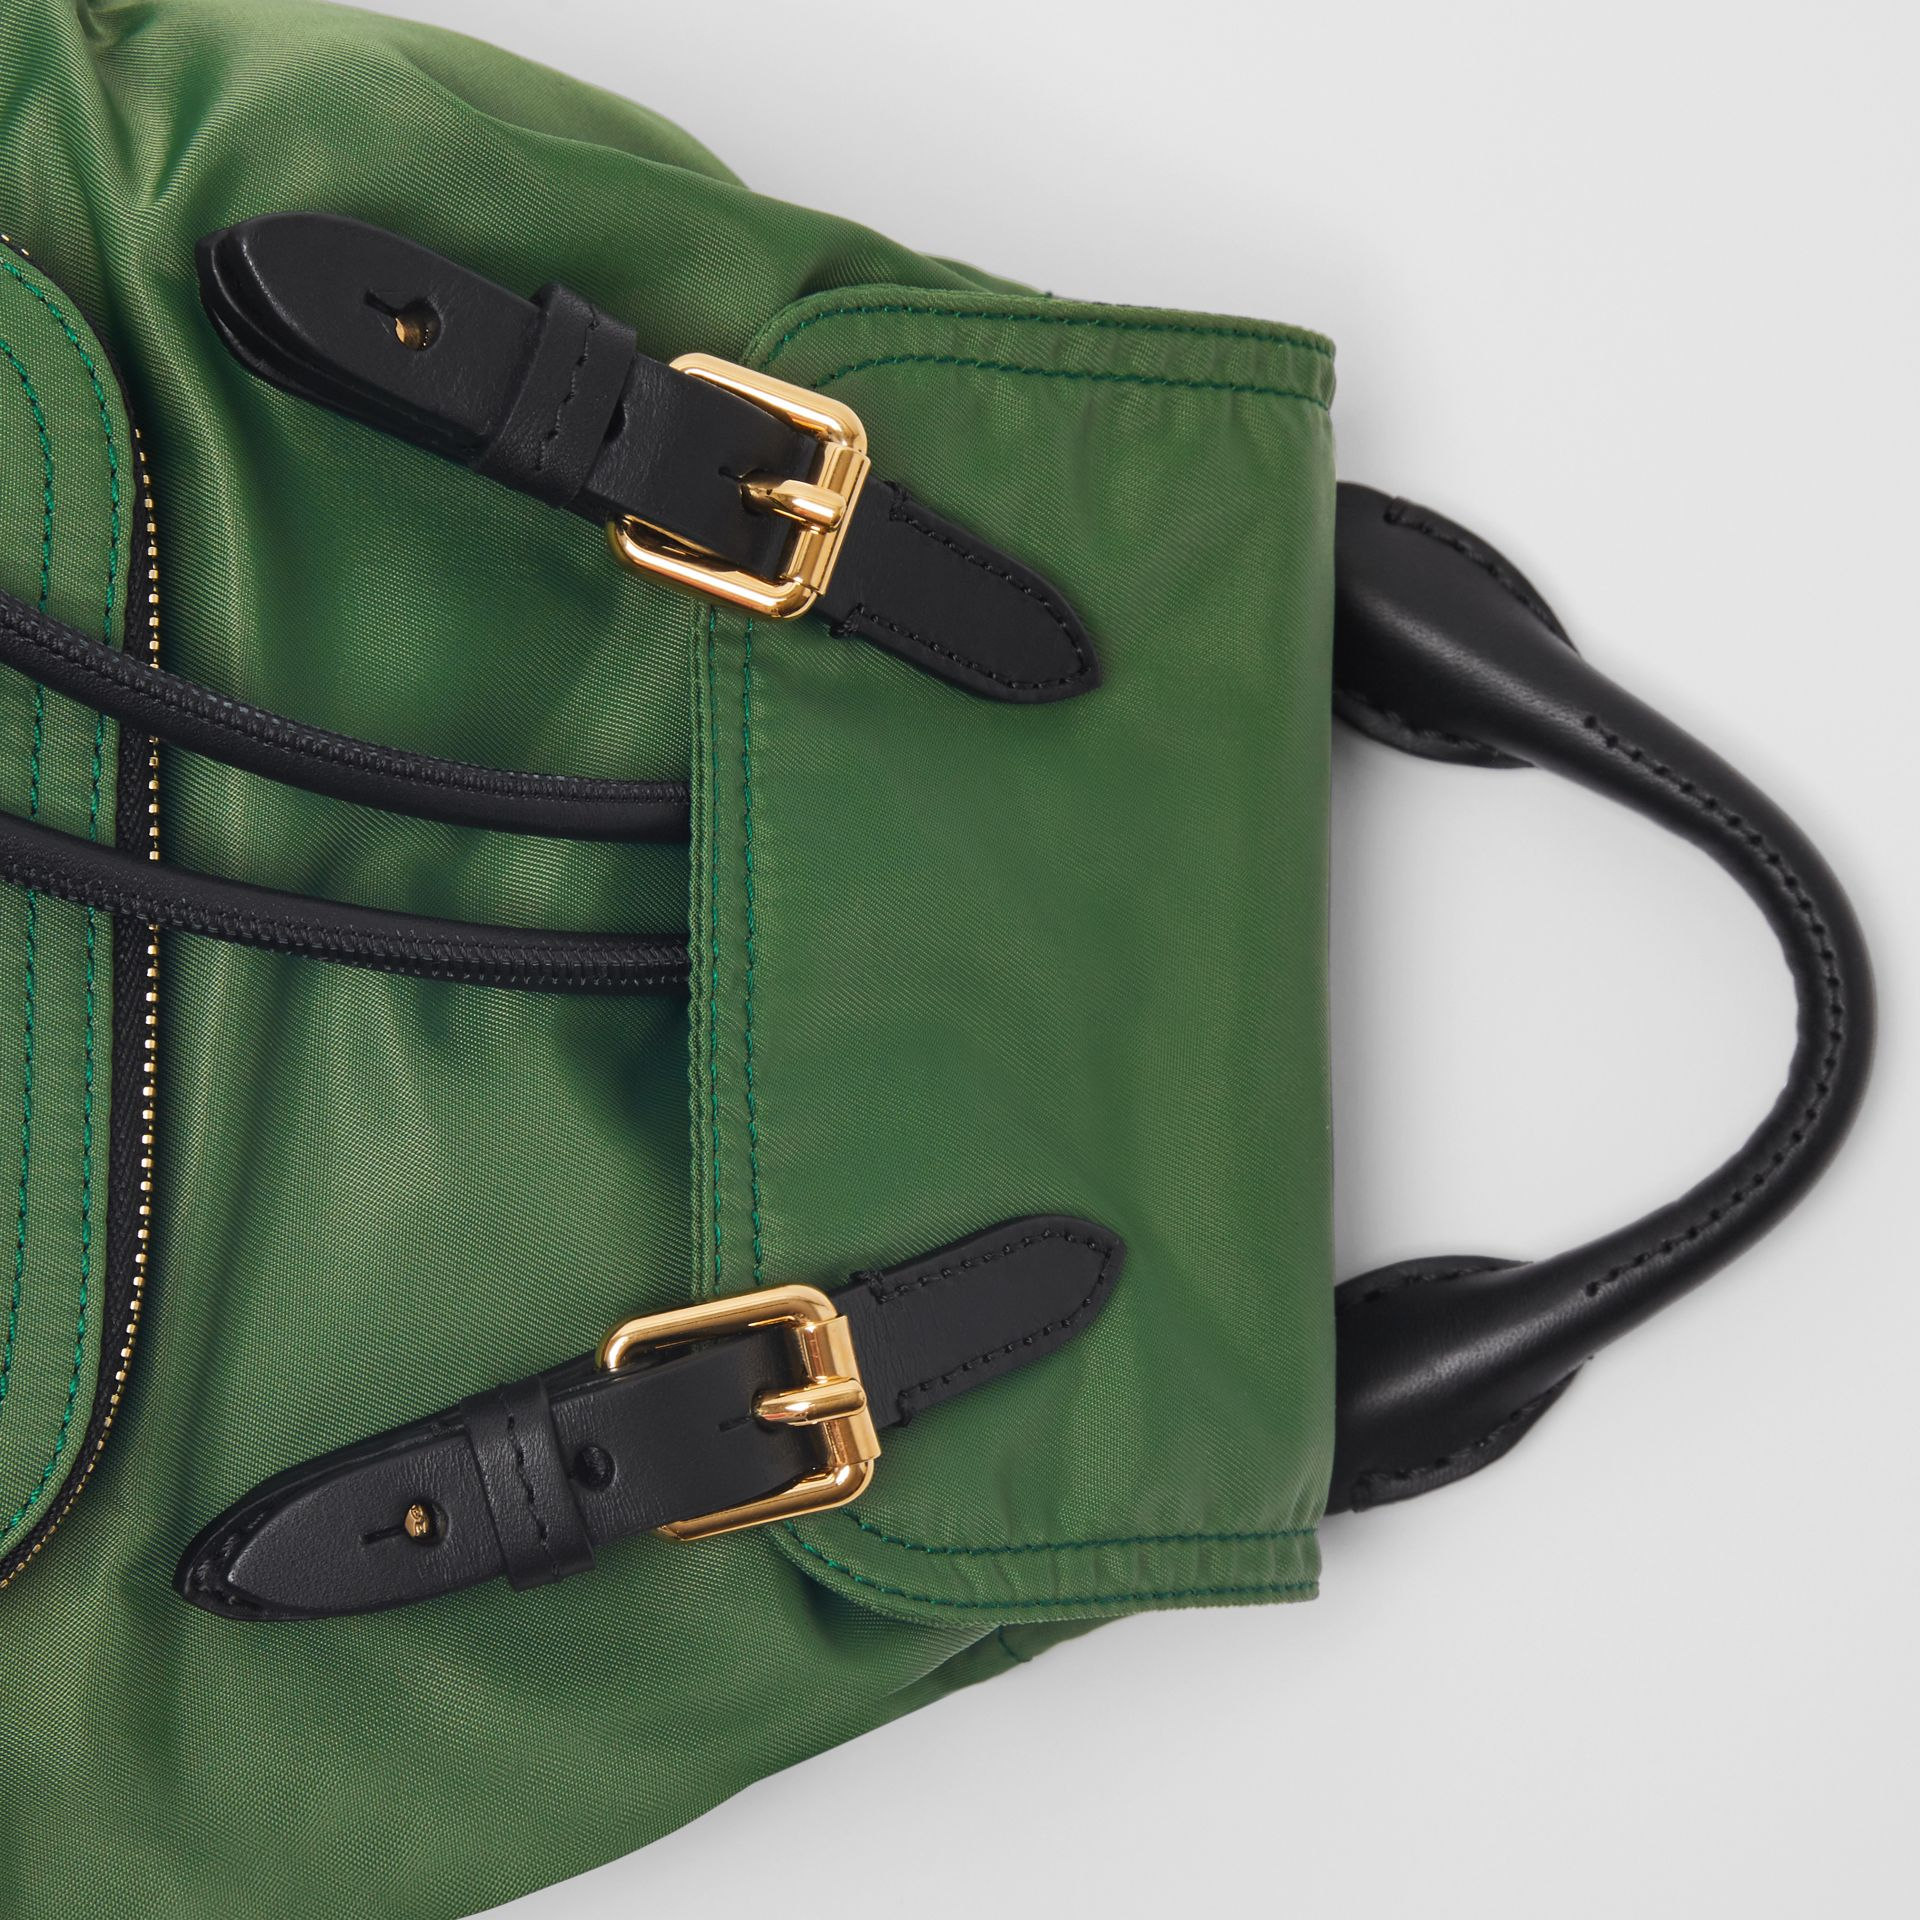 The Small Crossbody Rucksack in Nylon in Racing Green - Women | Burberry - gallery image 1